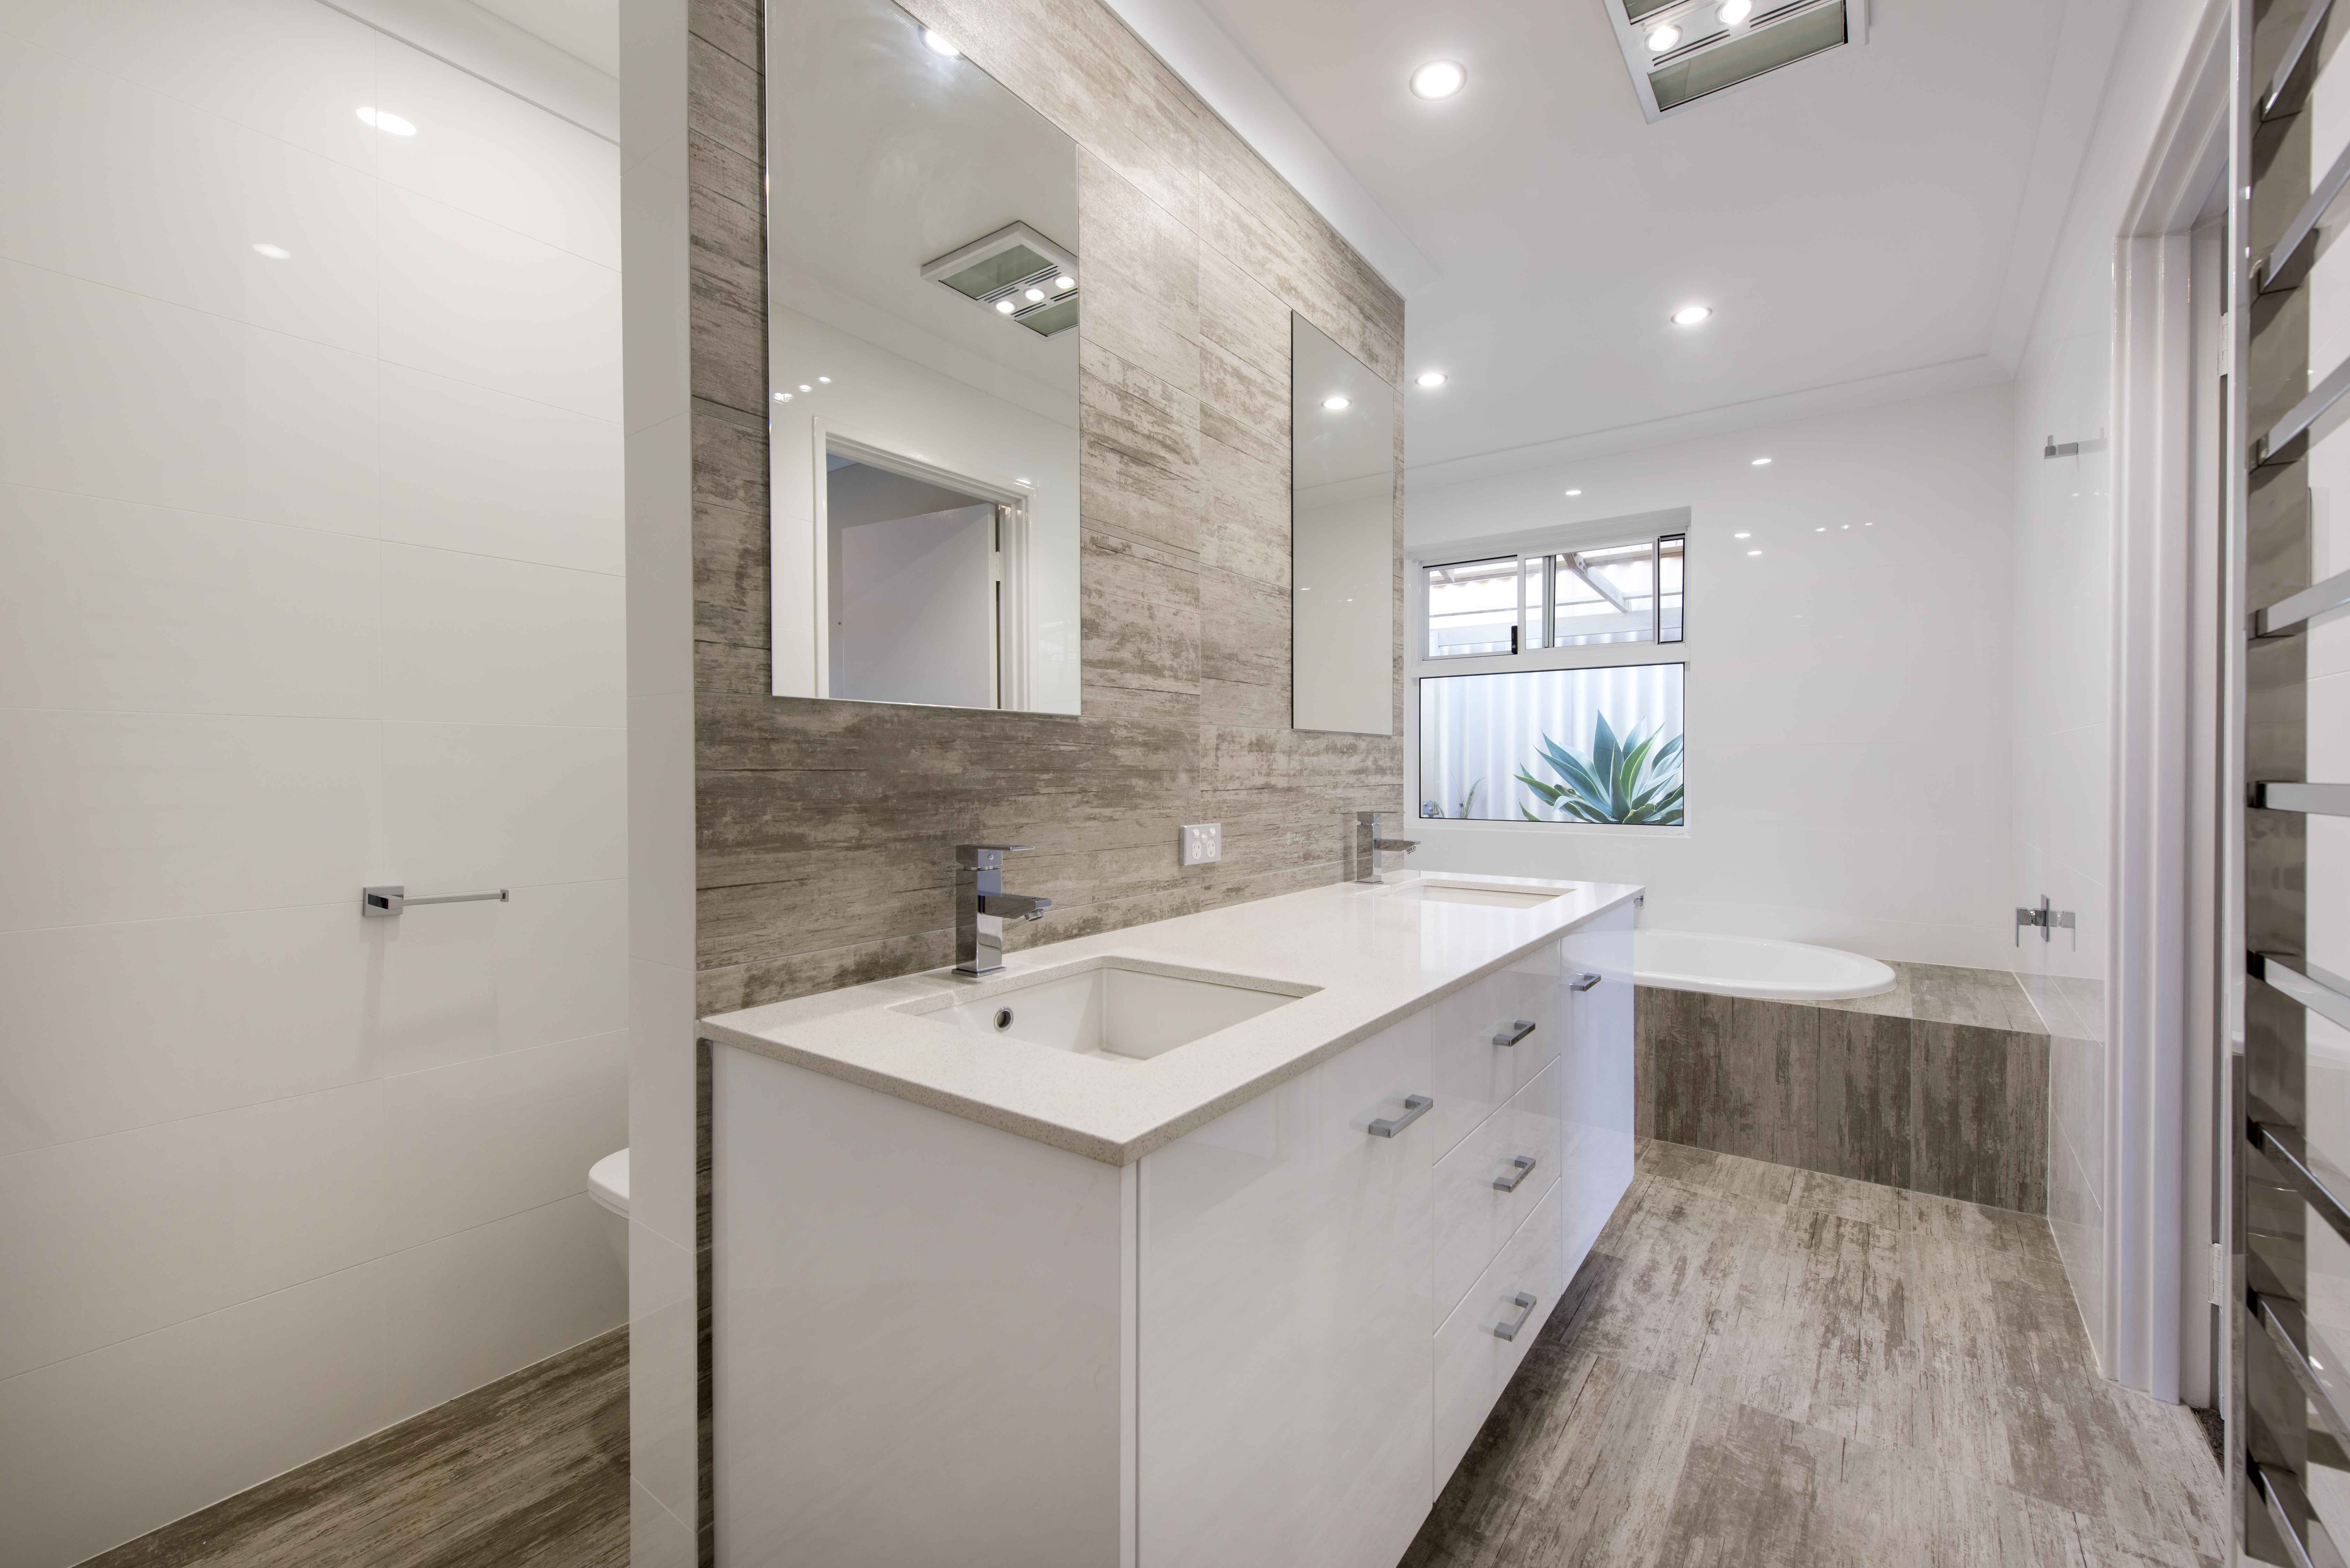 Bathroom Renovation Ideas Perth bathroom renovations perth wa | veejay's renovation